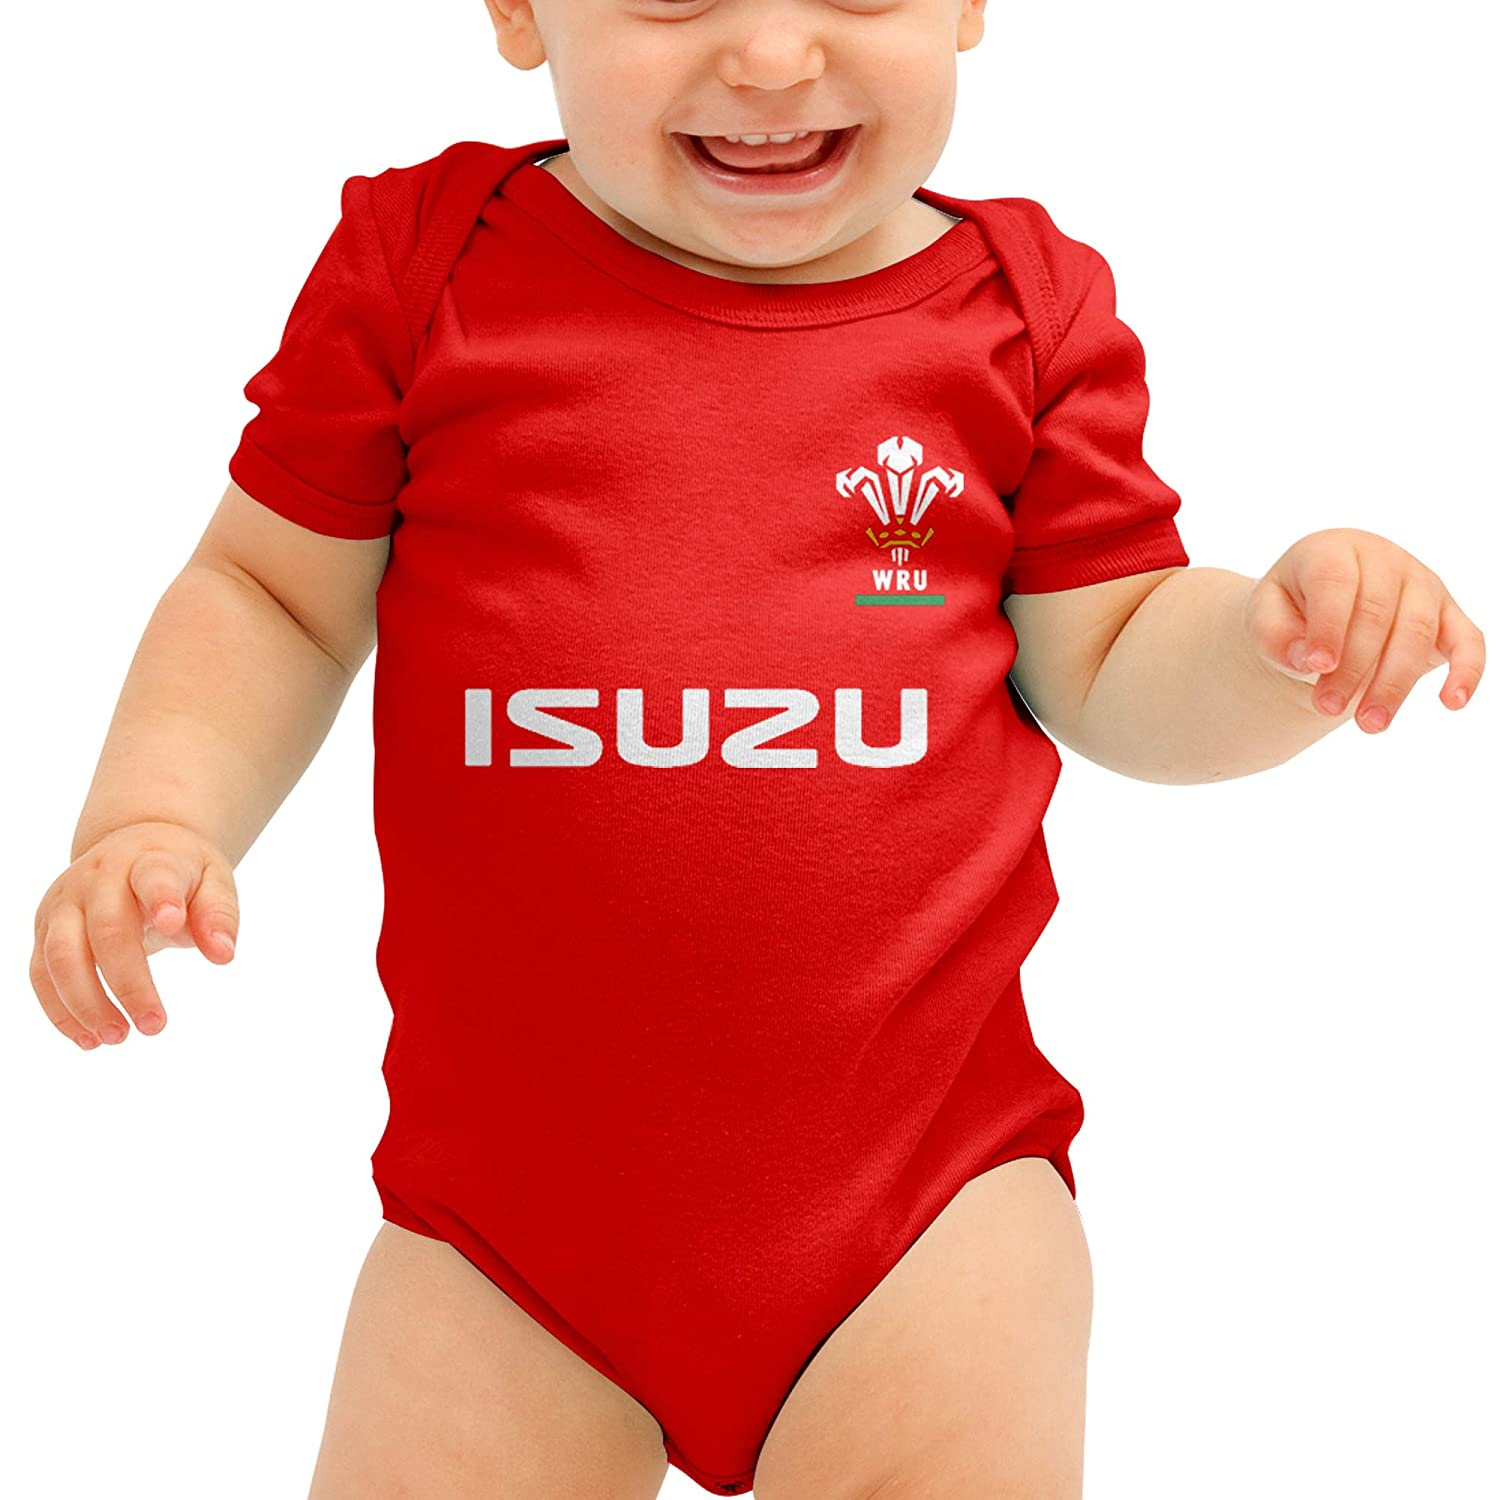 Home and Away Kits Wales Rugby Shirt Cymru Baby Grows Wales Bodysuit Babygrow Welsh Rugby Baby Grow 9-12 Months, Home and Away 2 Pack